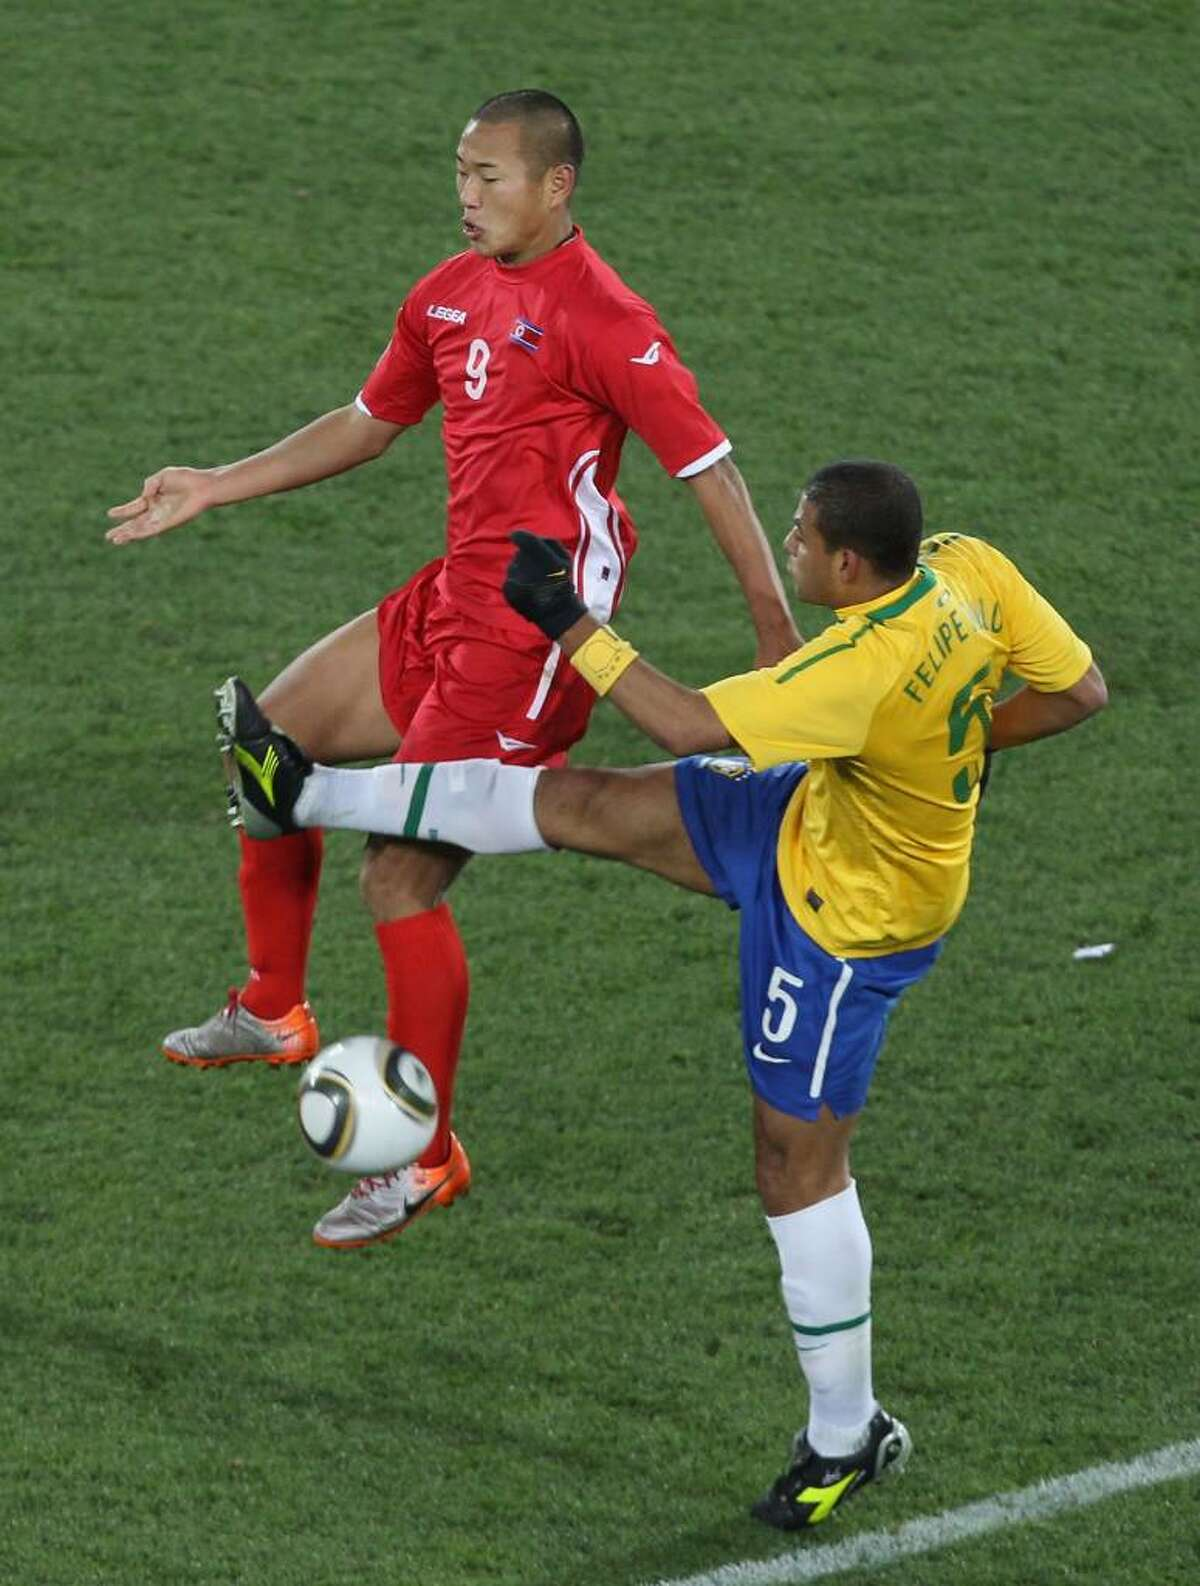 JOHANNESBURG, SOUTH AFRICA - JUNE 15: Jong Tae-Se of North Korea and Felipe Melo of Brazil battle for the ball during the 2010 FIFA World Cup South Africa Group G match between Brazil and North Korea at Ellis Park Stadium on June 15, 2010 in Johannesburg, South Africa. (Photo by Ian Walton/Getty Images) *** Local Caption *** Jong Tae-Se;Felipe Melo of Brazil